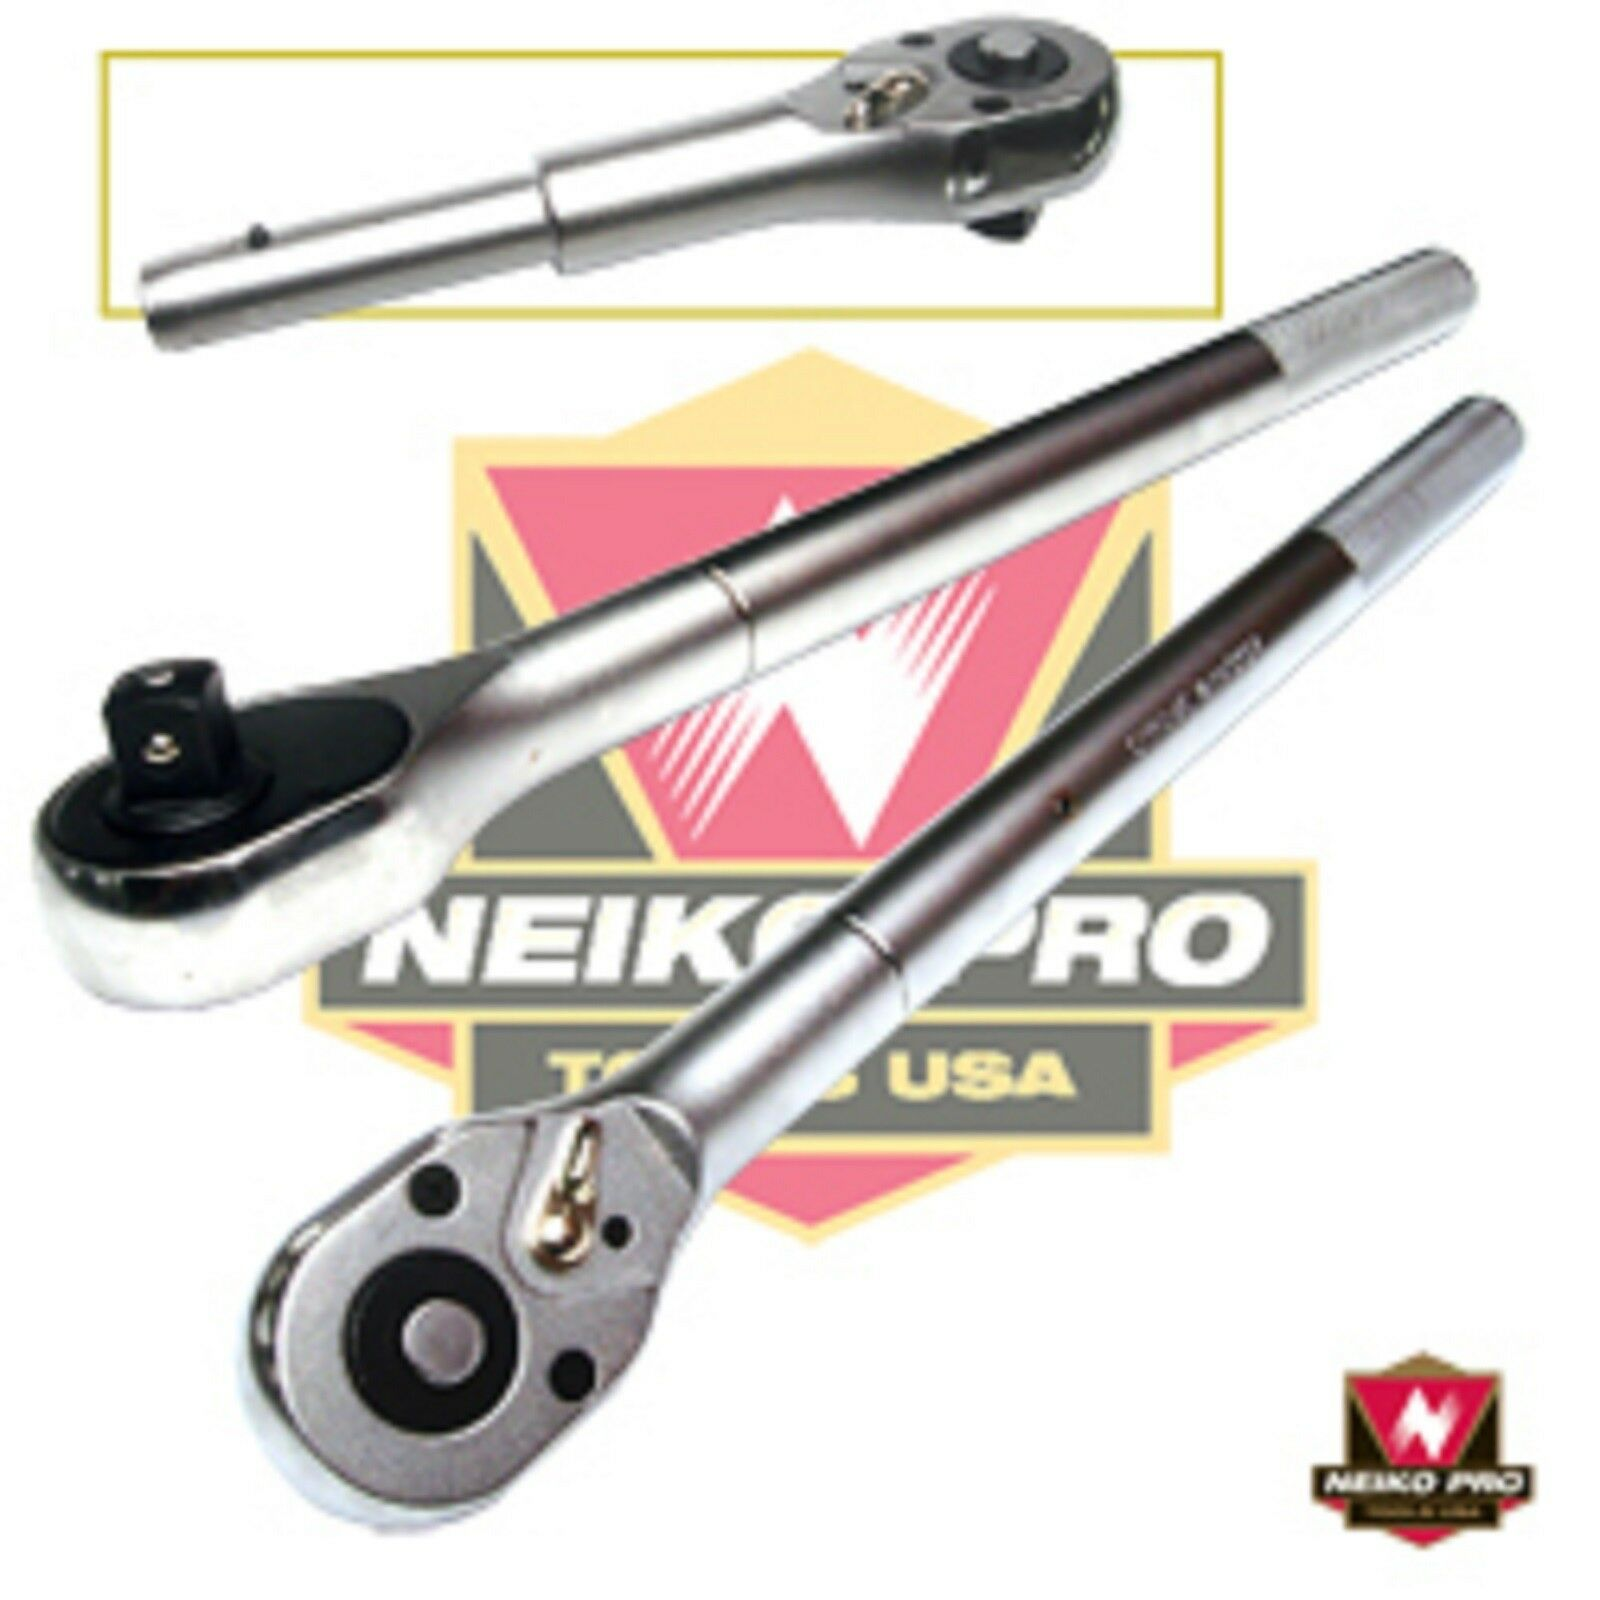 "NEIKO PRO TOOLS 1/"" DRIVE x 26/"" Long 24 TOOTH INDUSTRIAL-GRADE RATCHET"